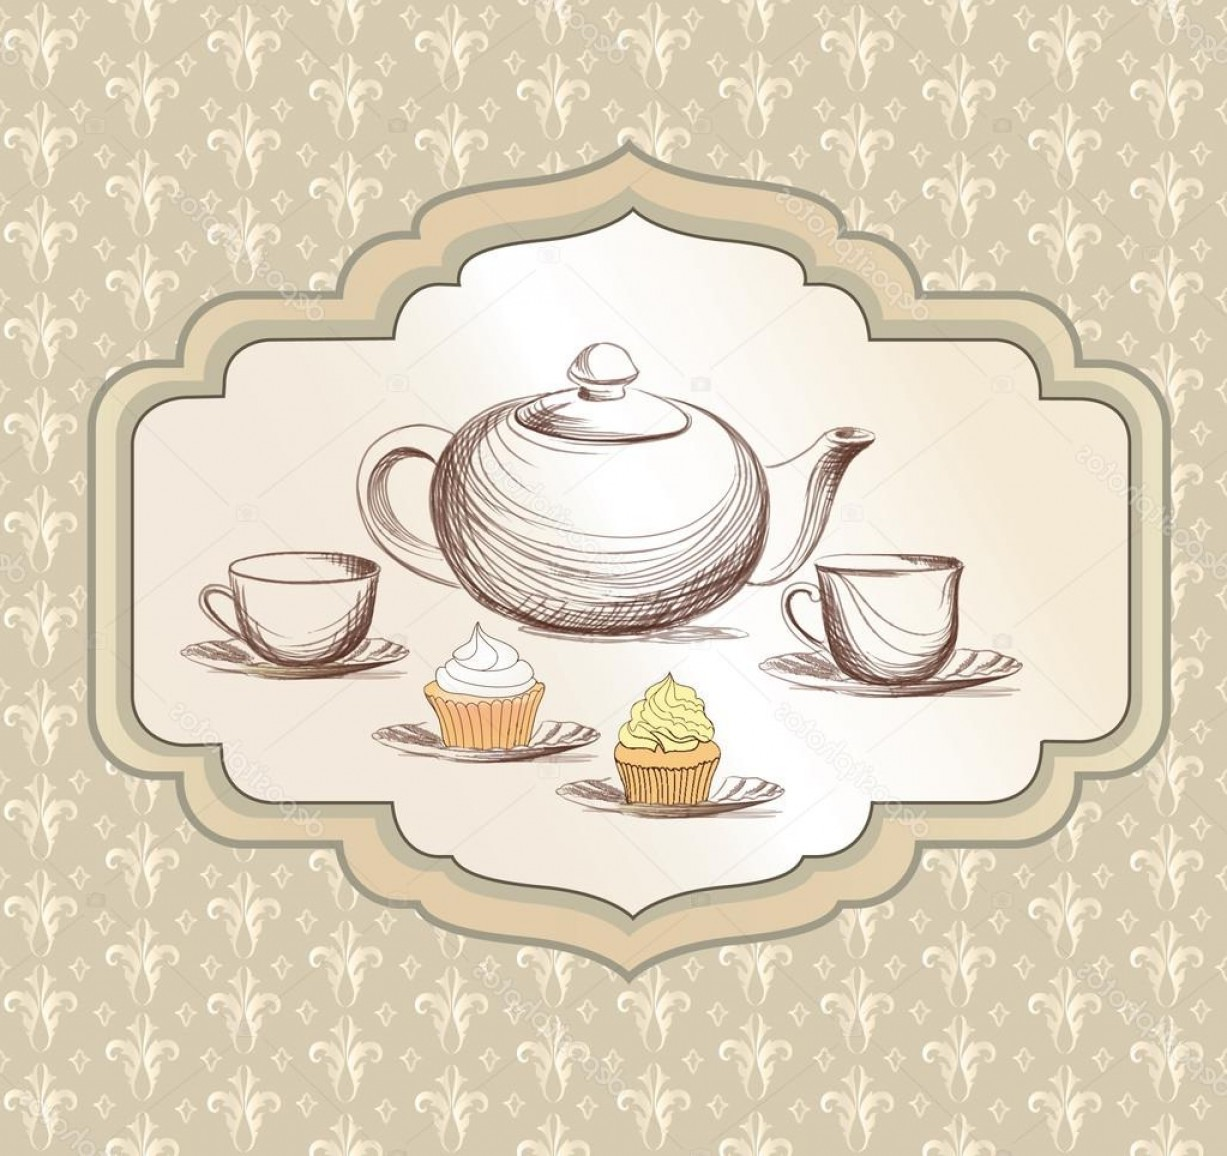 Vintage Tea Cup Vector: Stock Illustration Tea Cup Pastry And Kettle